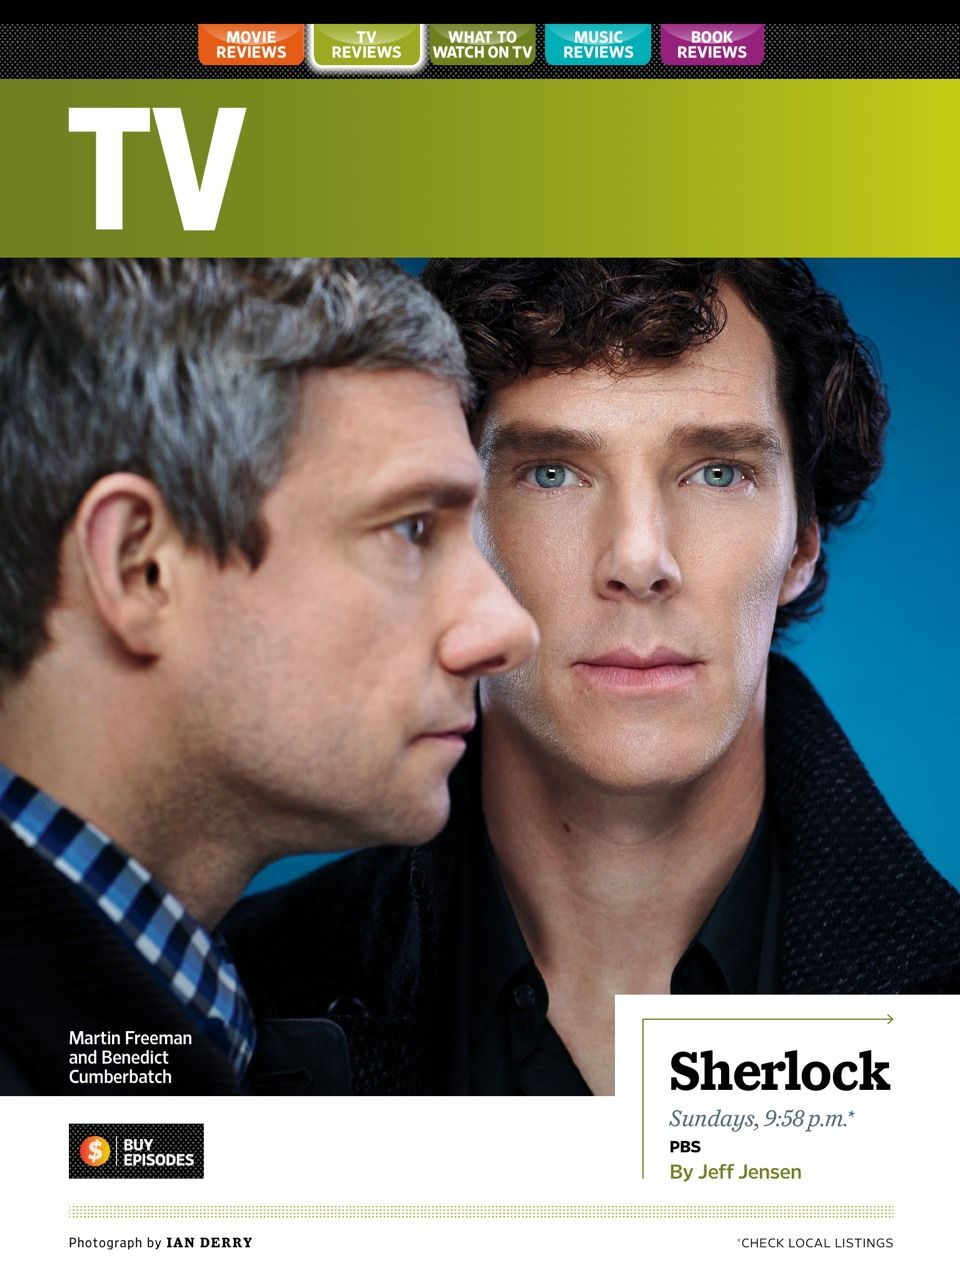 Entertainment Weekly review #sherlock #benedictcumberbatch #martinfreeman